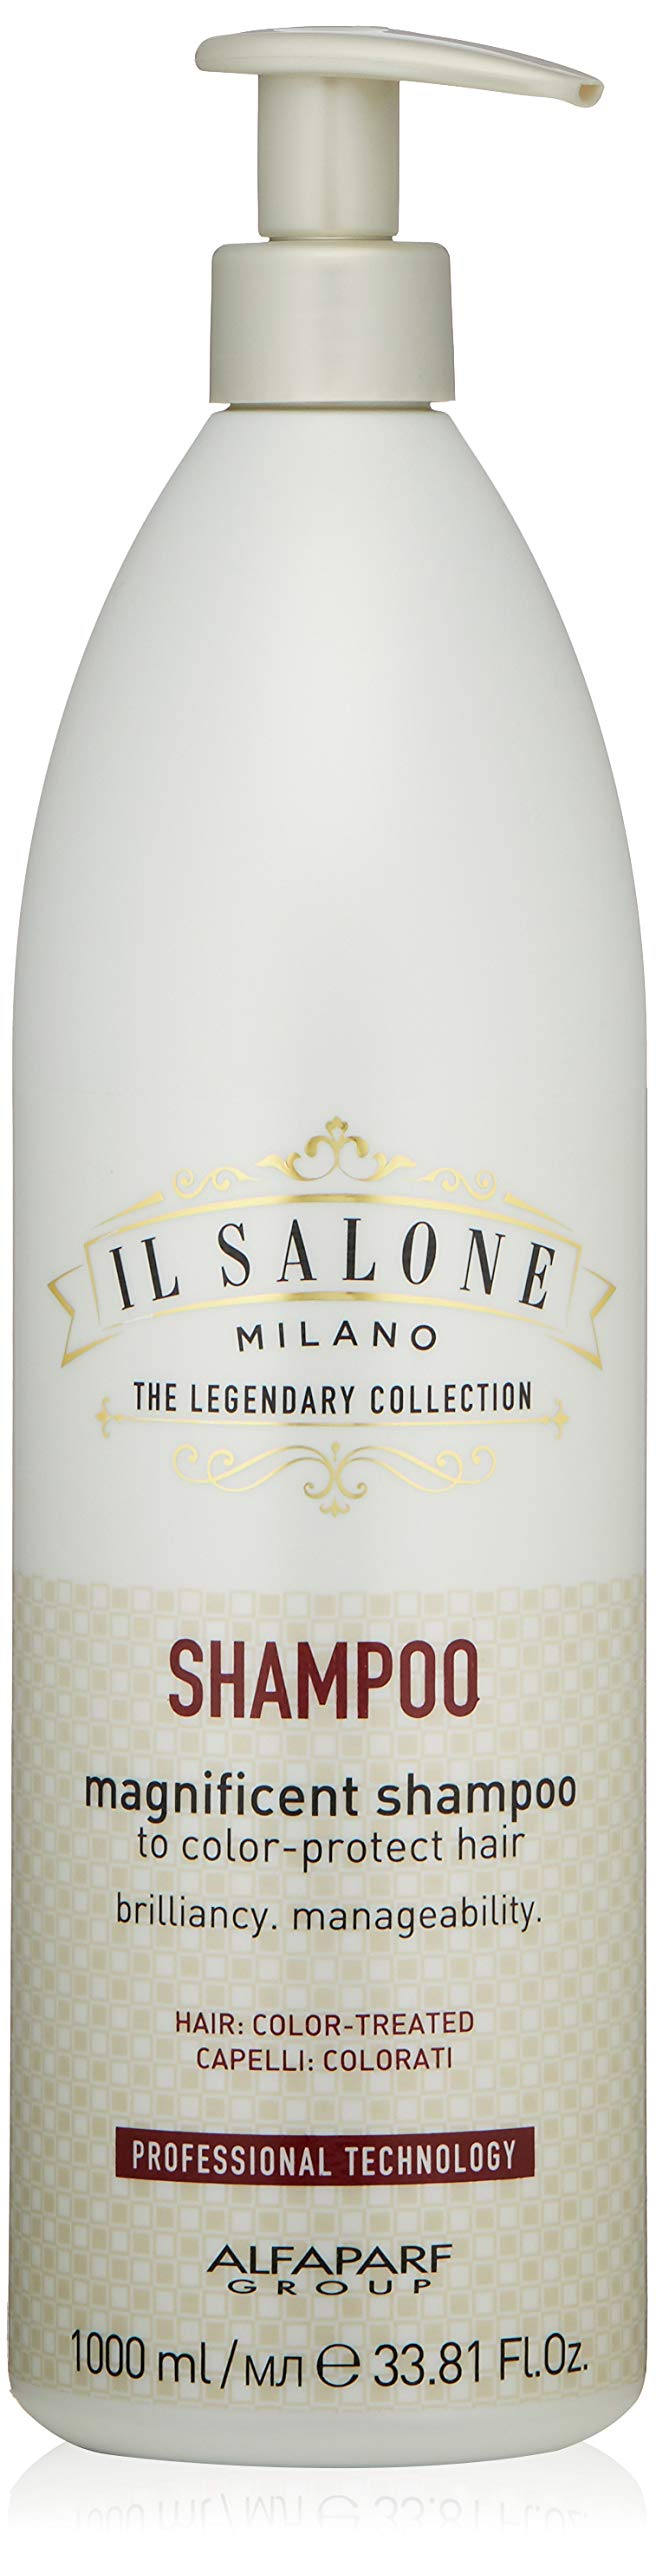 Il Salone Milano Professional Magnificent Shampoo for Color Treated Hair - Protects and Prolongs Color - Premium Quality - 33.81 Fl. Oz. / 1000ml